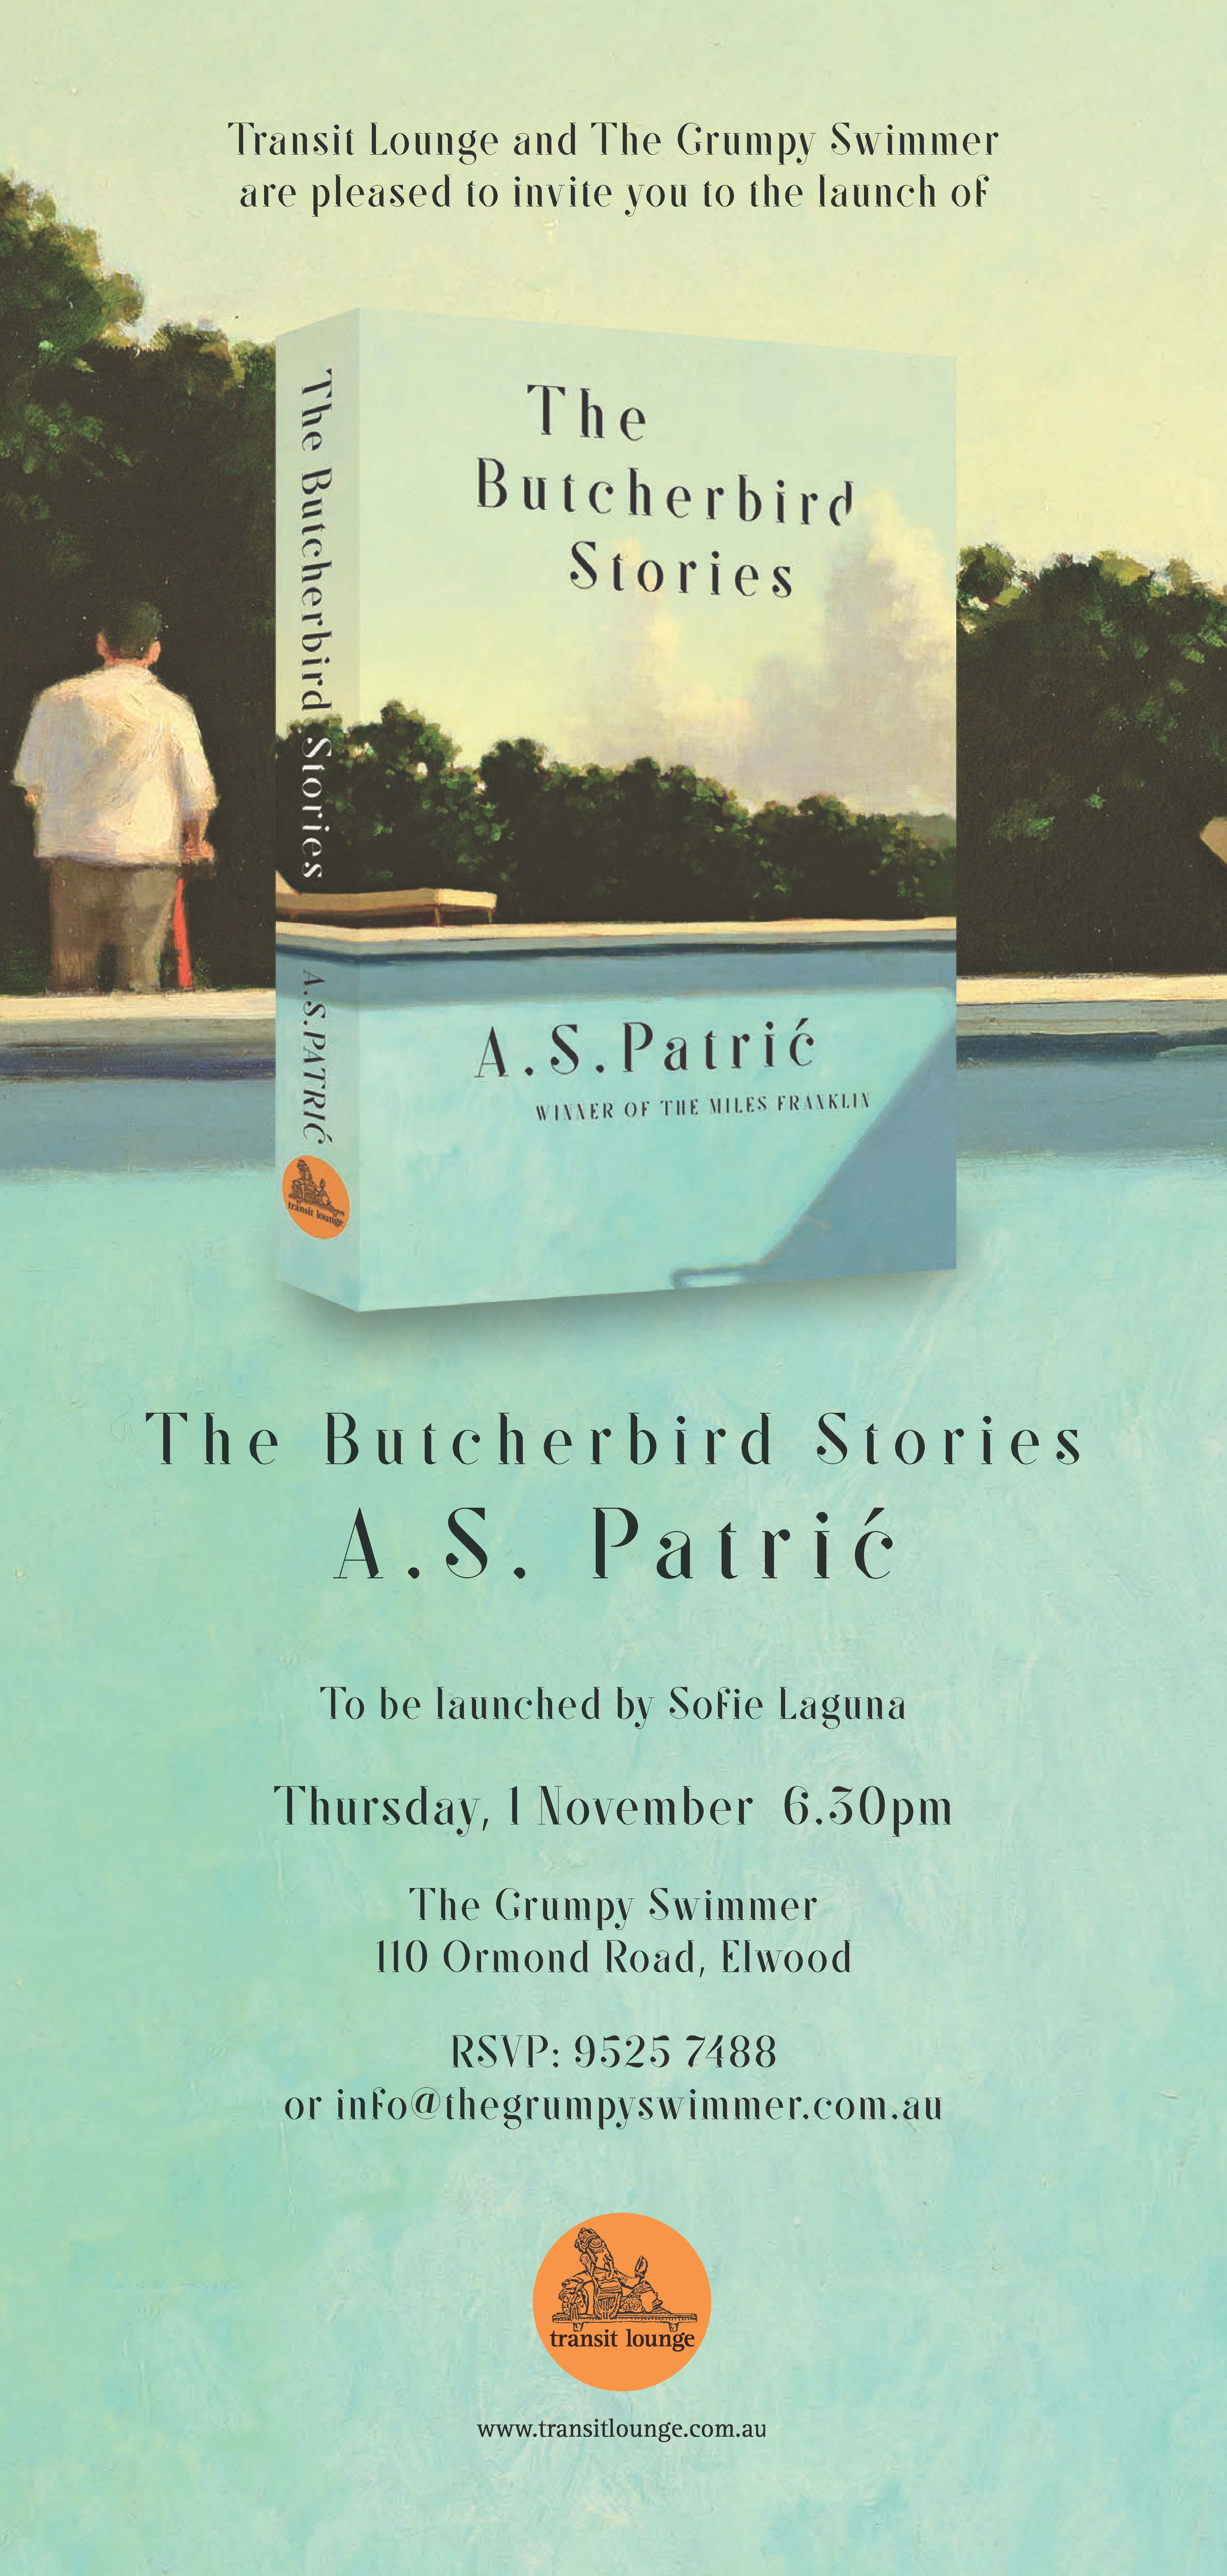 Launch of The Butcherbird Stories by A.S.Patric